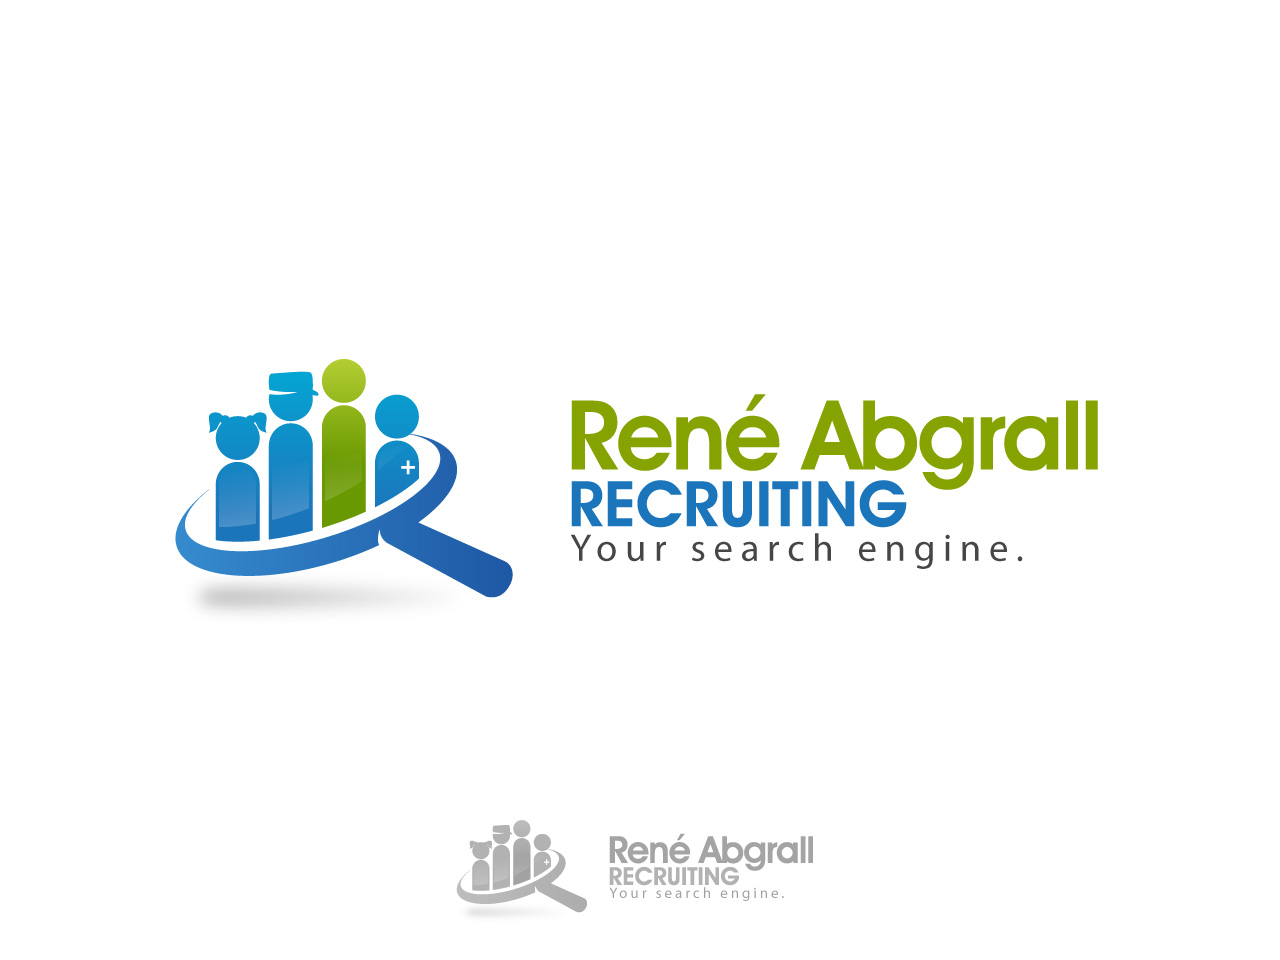 Logo Design by jpbituin - Entry No. 11 in the Logo Design Contest Artistic Logo Design for René Abgrall Recruiting.